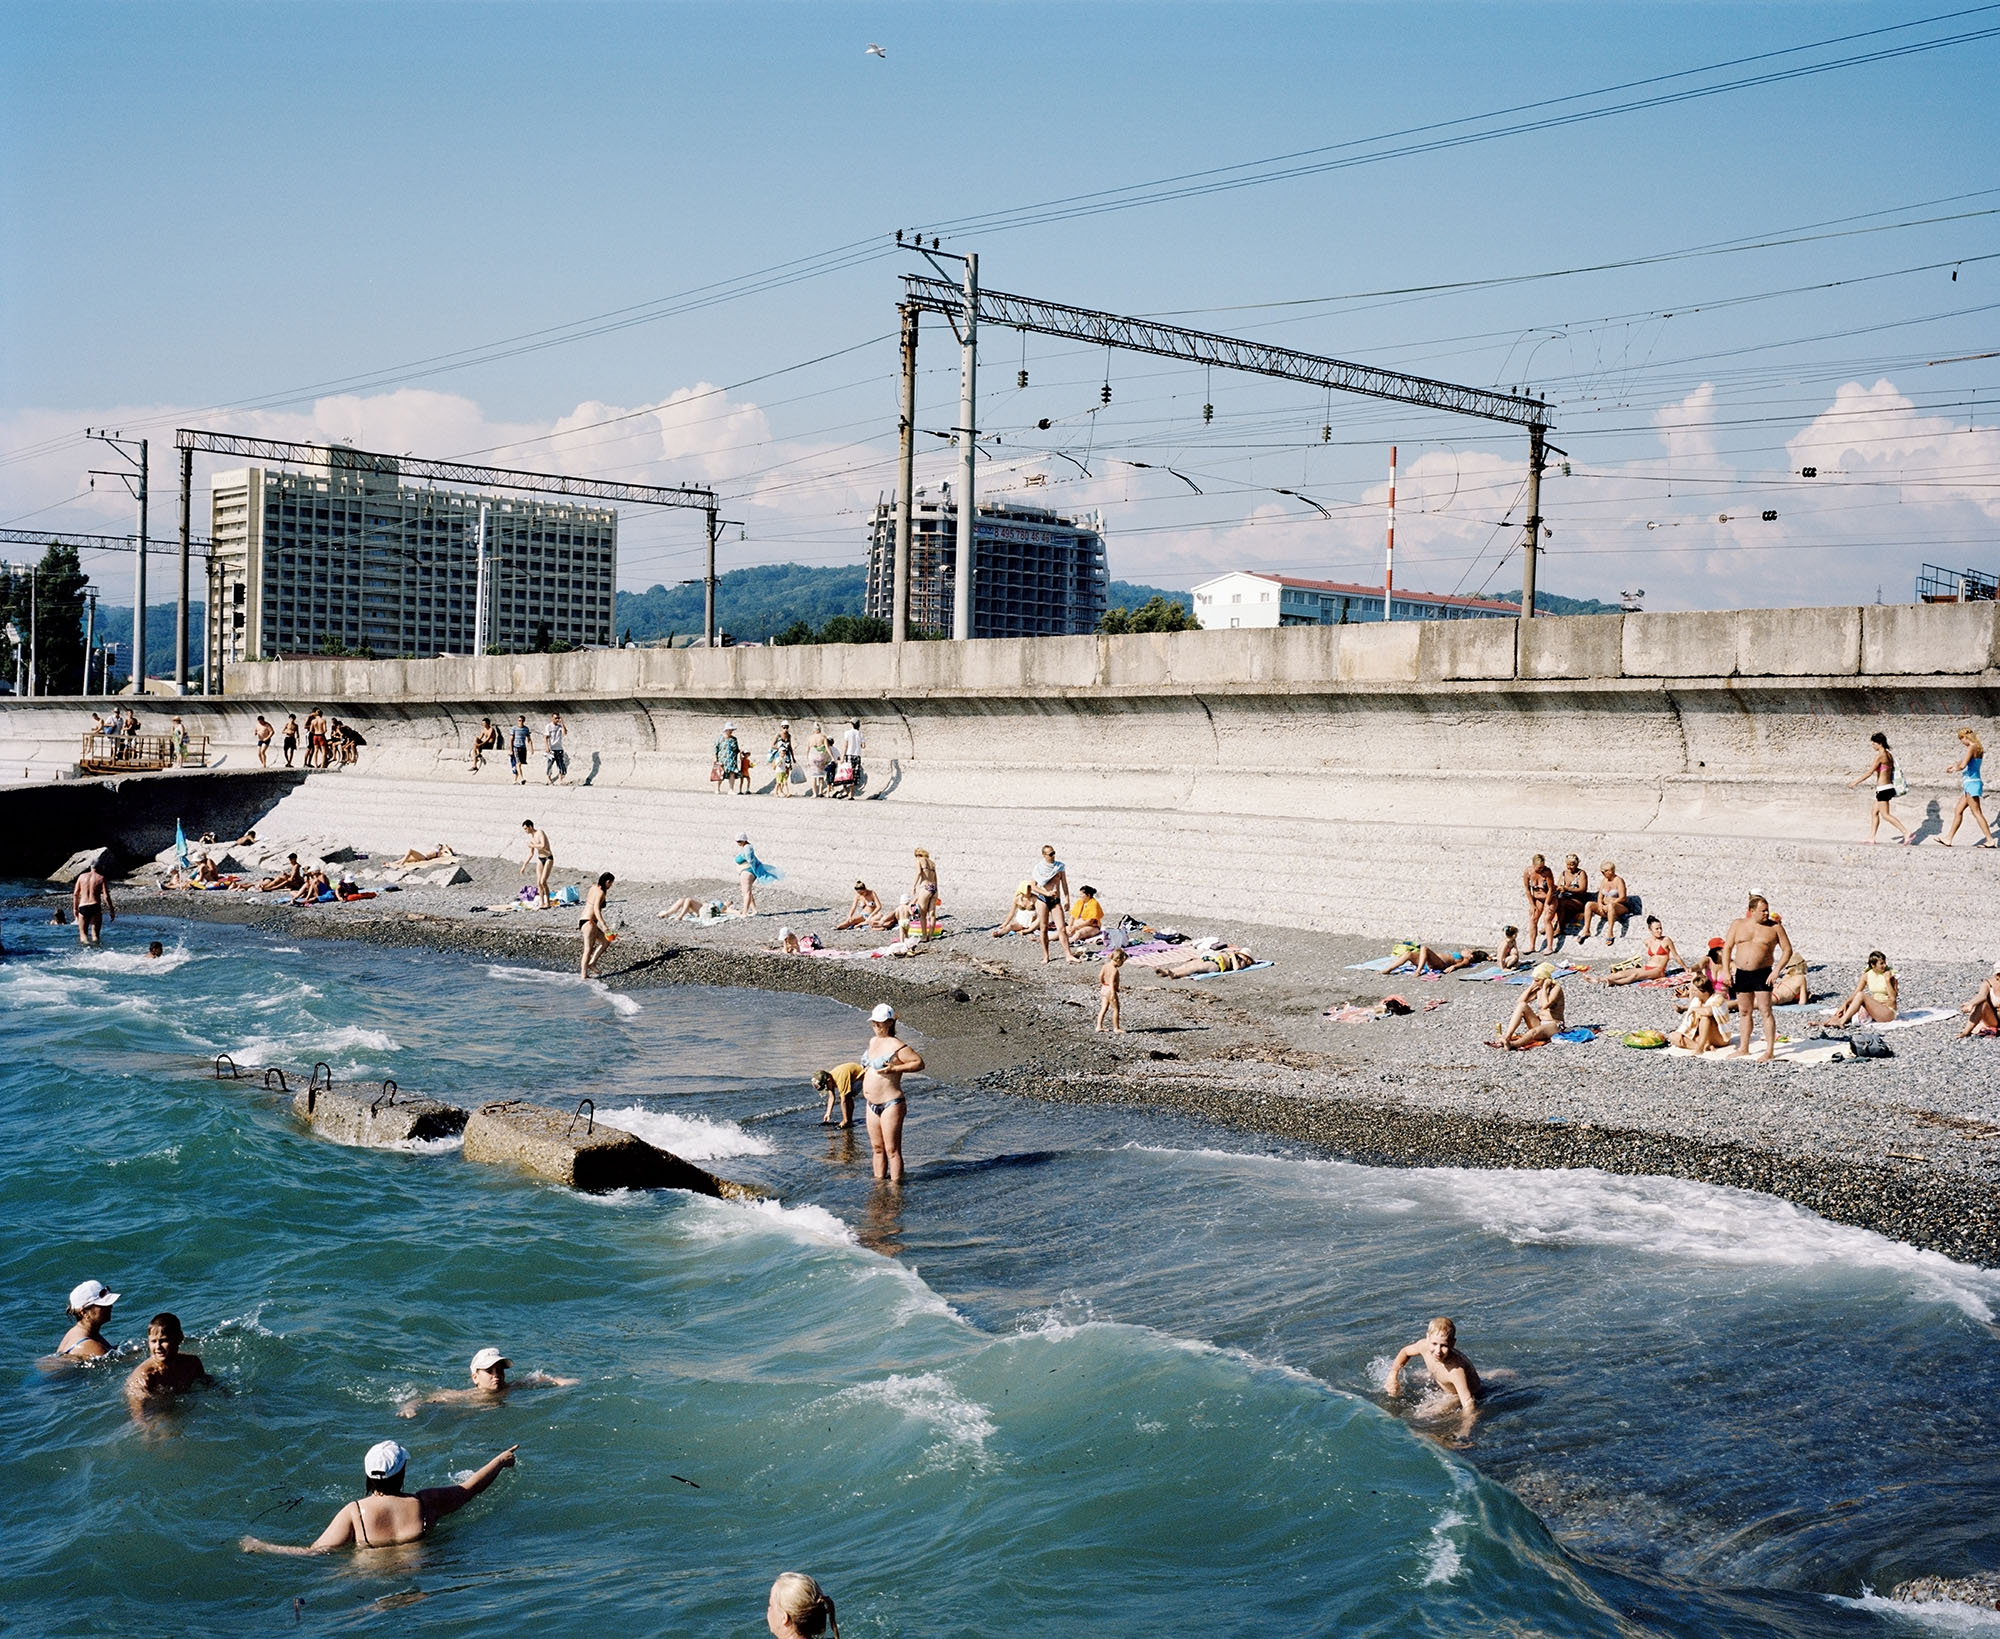 Rob Hornstra, Adler, Sochi Region, Russia, 2011. © Rob Hornstra, courtesy Flatland Gallery NL/Paris. From The Sochi Project: An Atlas of War and Tourism in the Caucasus (Aperture, 2013)